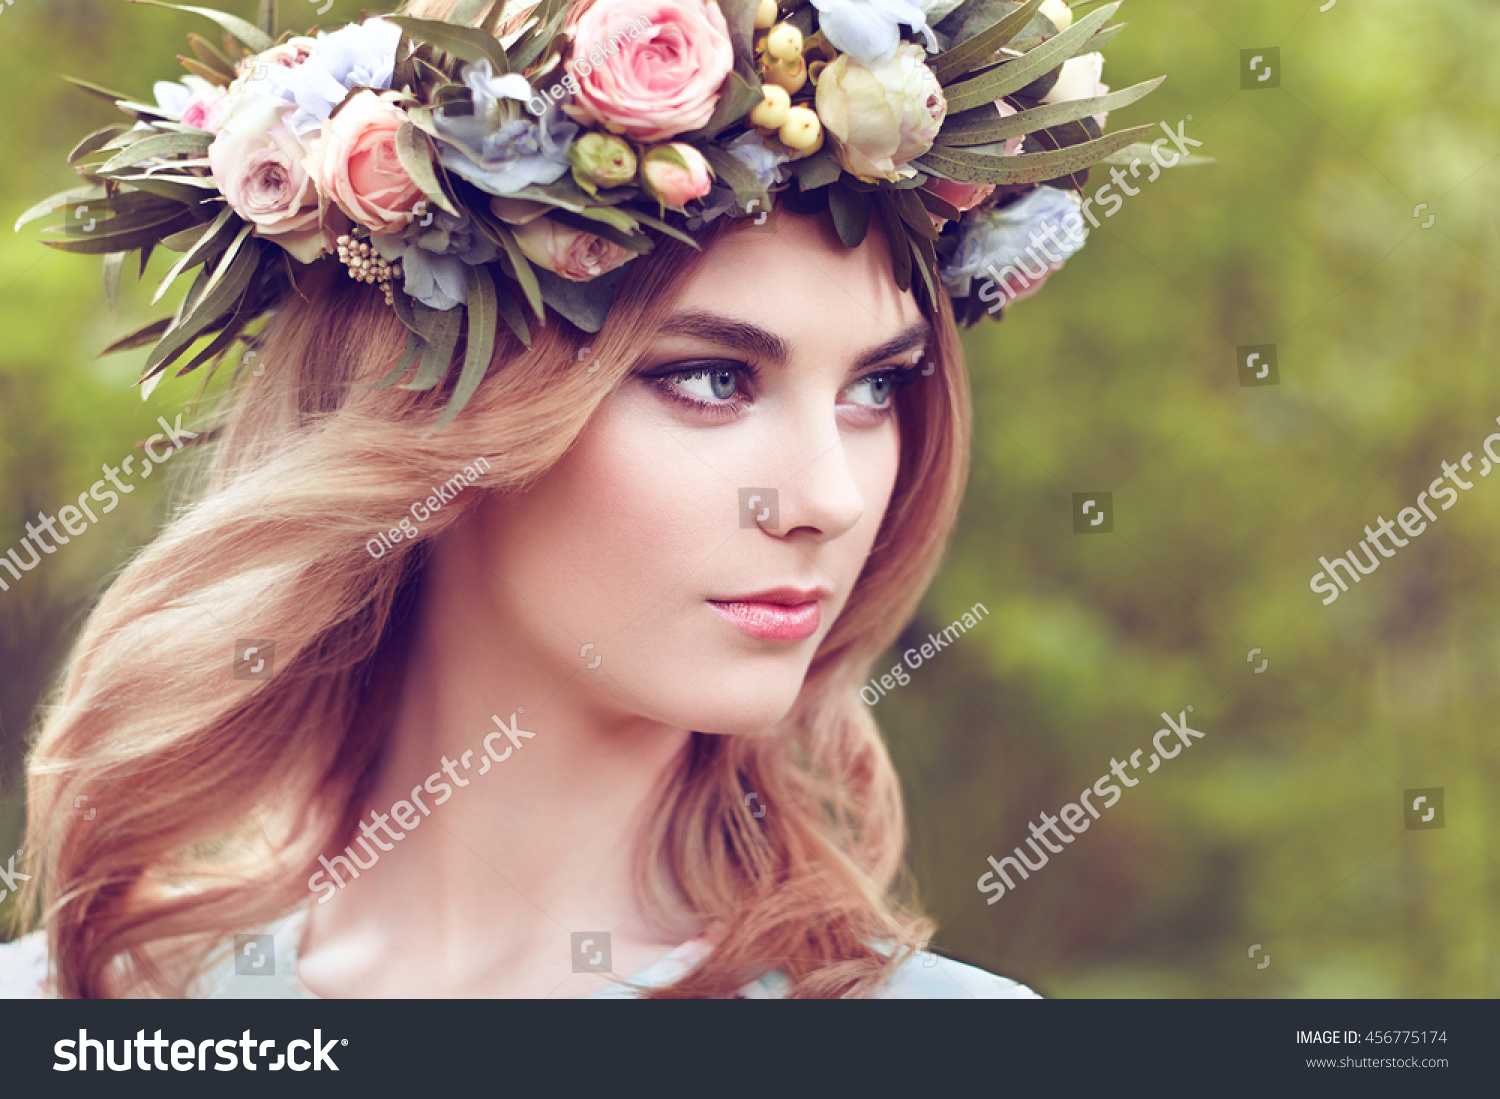 Beautiful blonde woman flower wreath on stock photo 456775174 beautiful blonde woman with flower wreath on her head beauty girl with flowers hairstyle dhlflorist Gallery